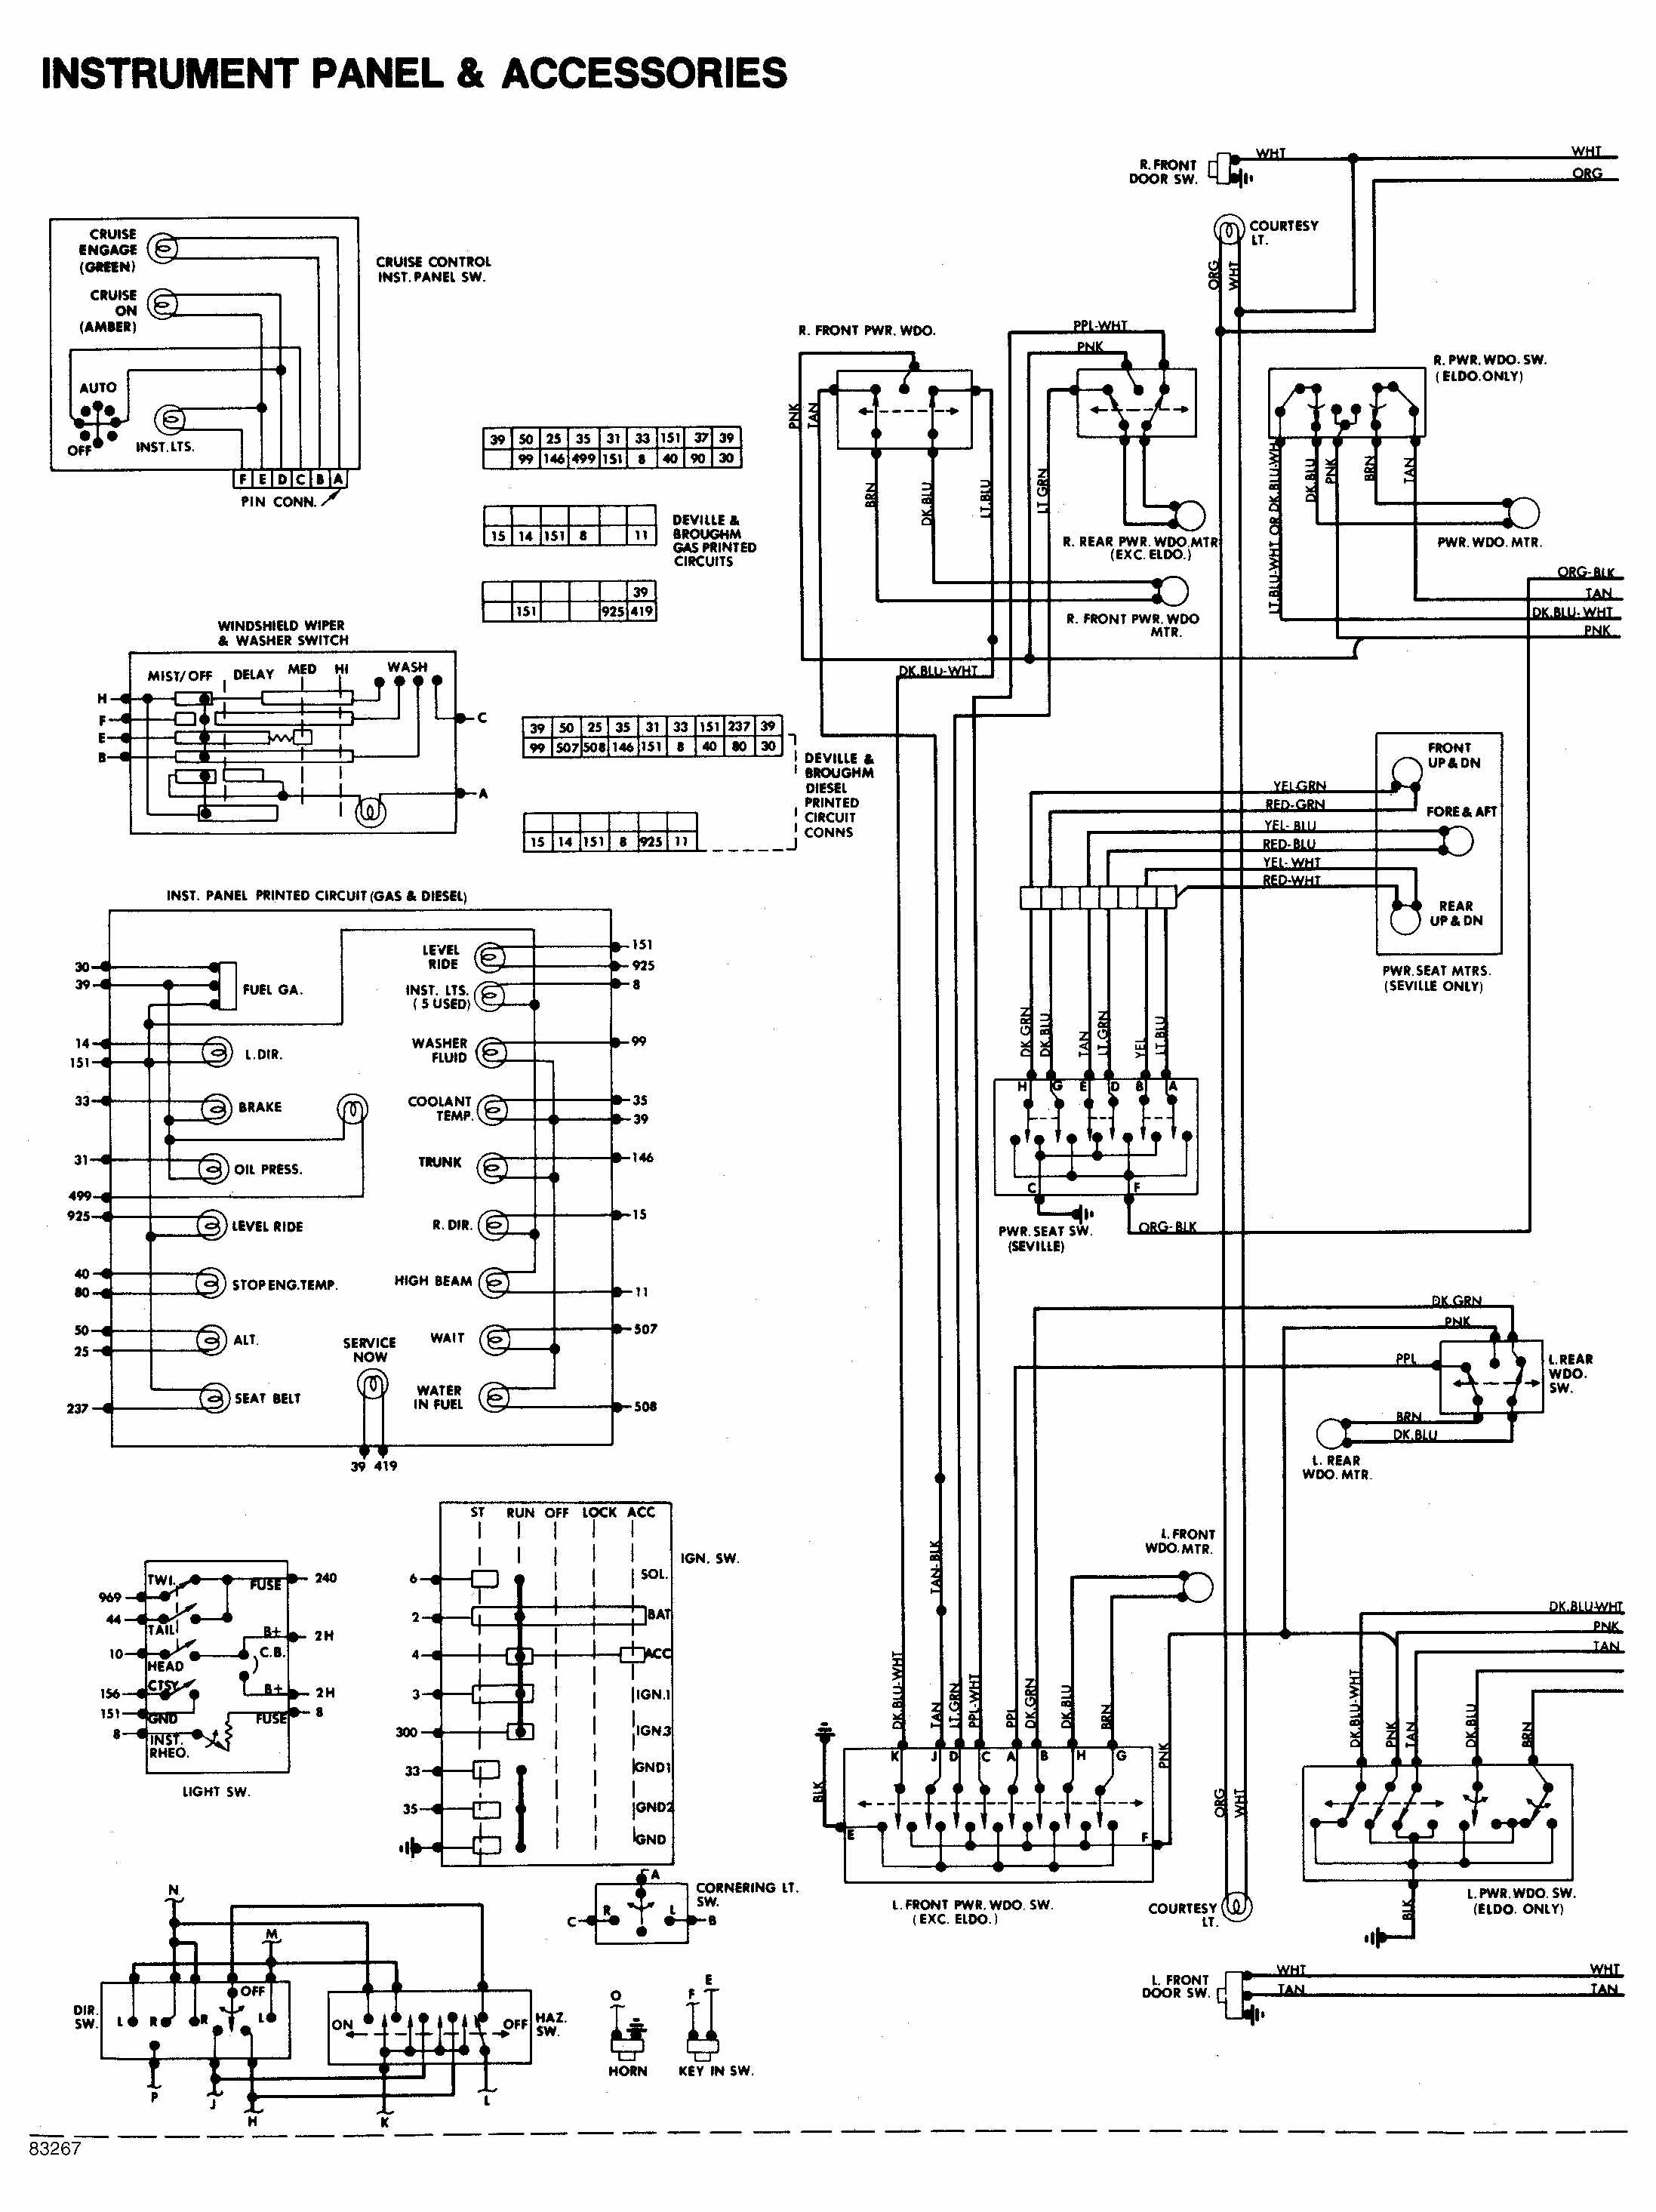 instrument panel and accessories wiring diagram of 1984 cadillac deville chevy diagrams 1984 corvette fuel pump wiring diagram at eliteediting.co